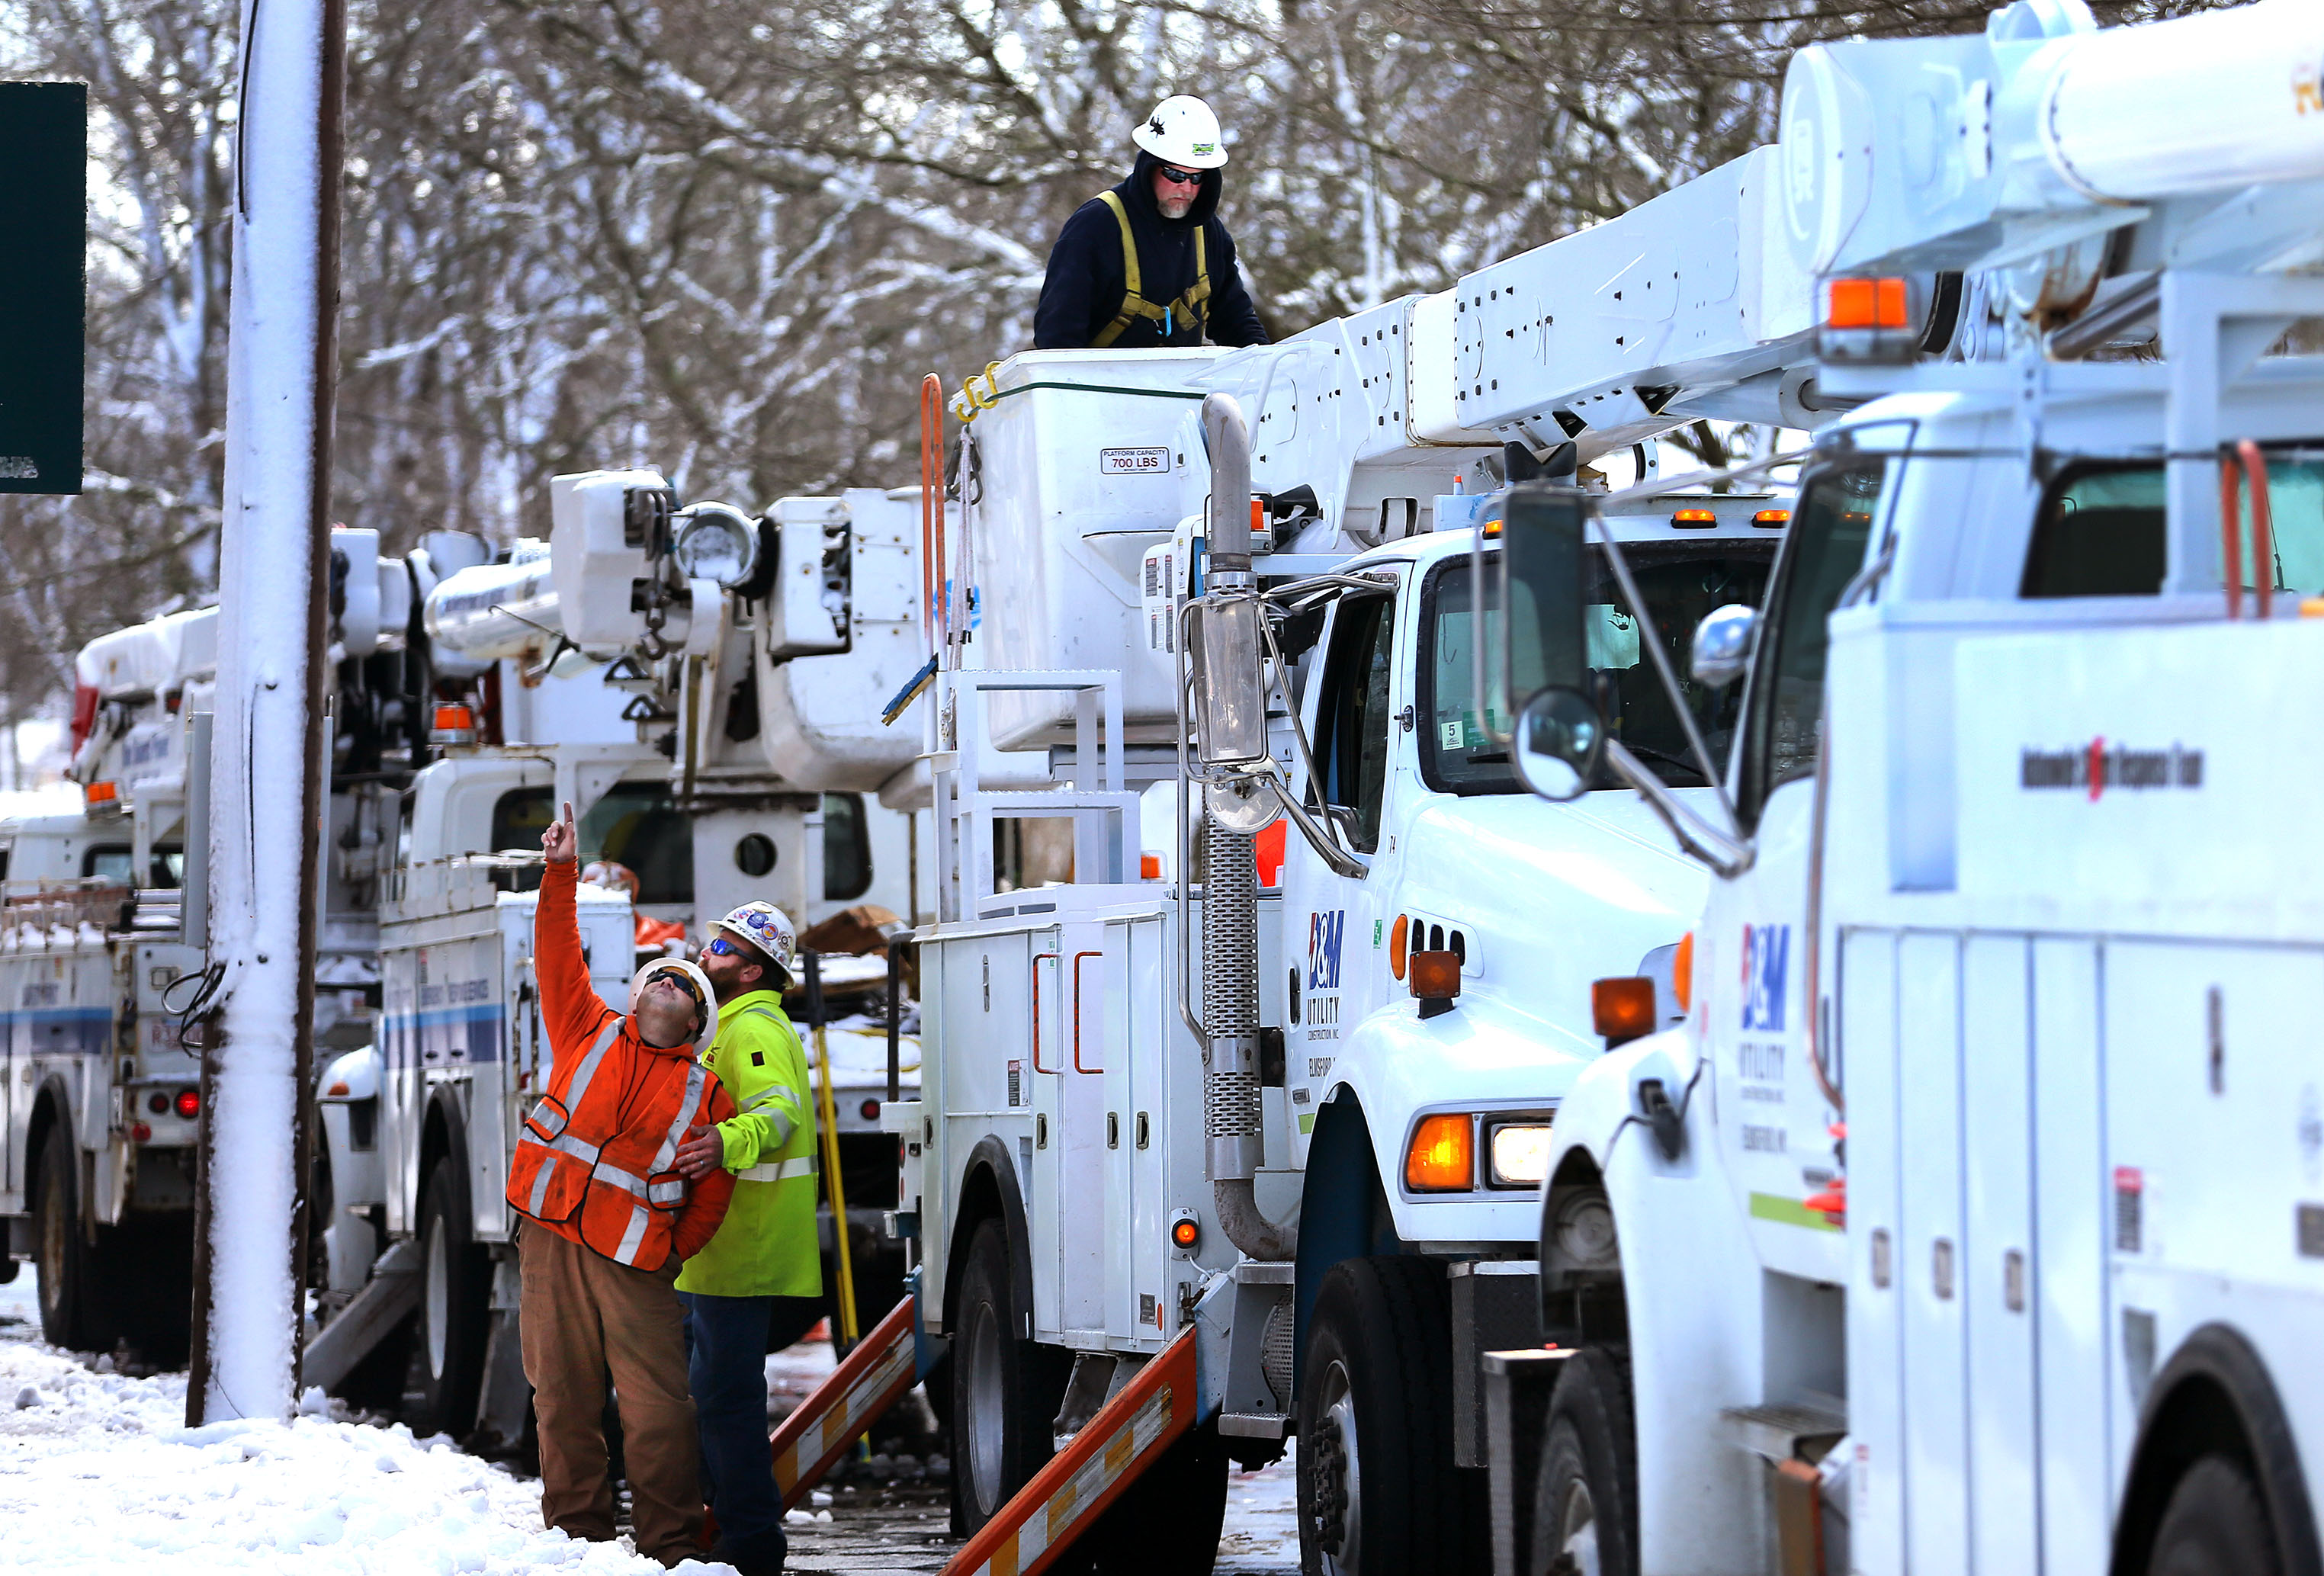 Power outage numbers dropping on Cape Cod - The Boston Globe